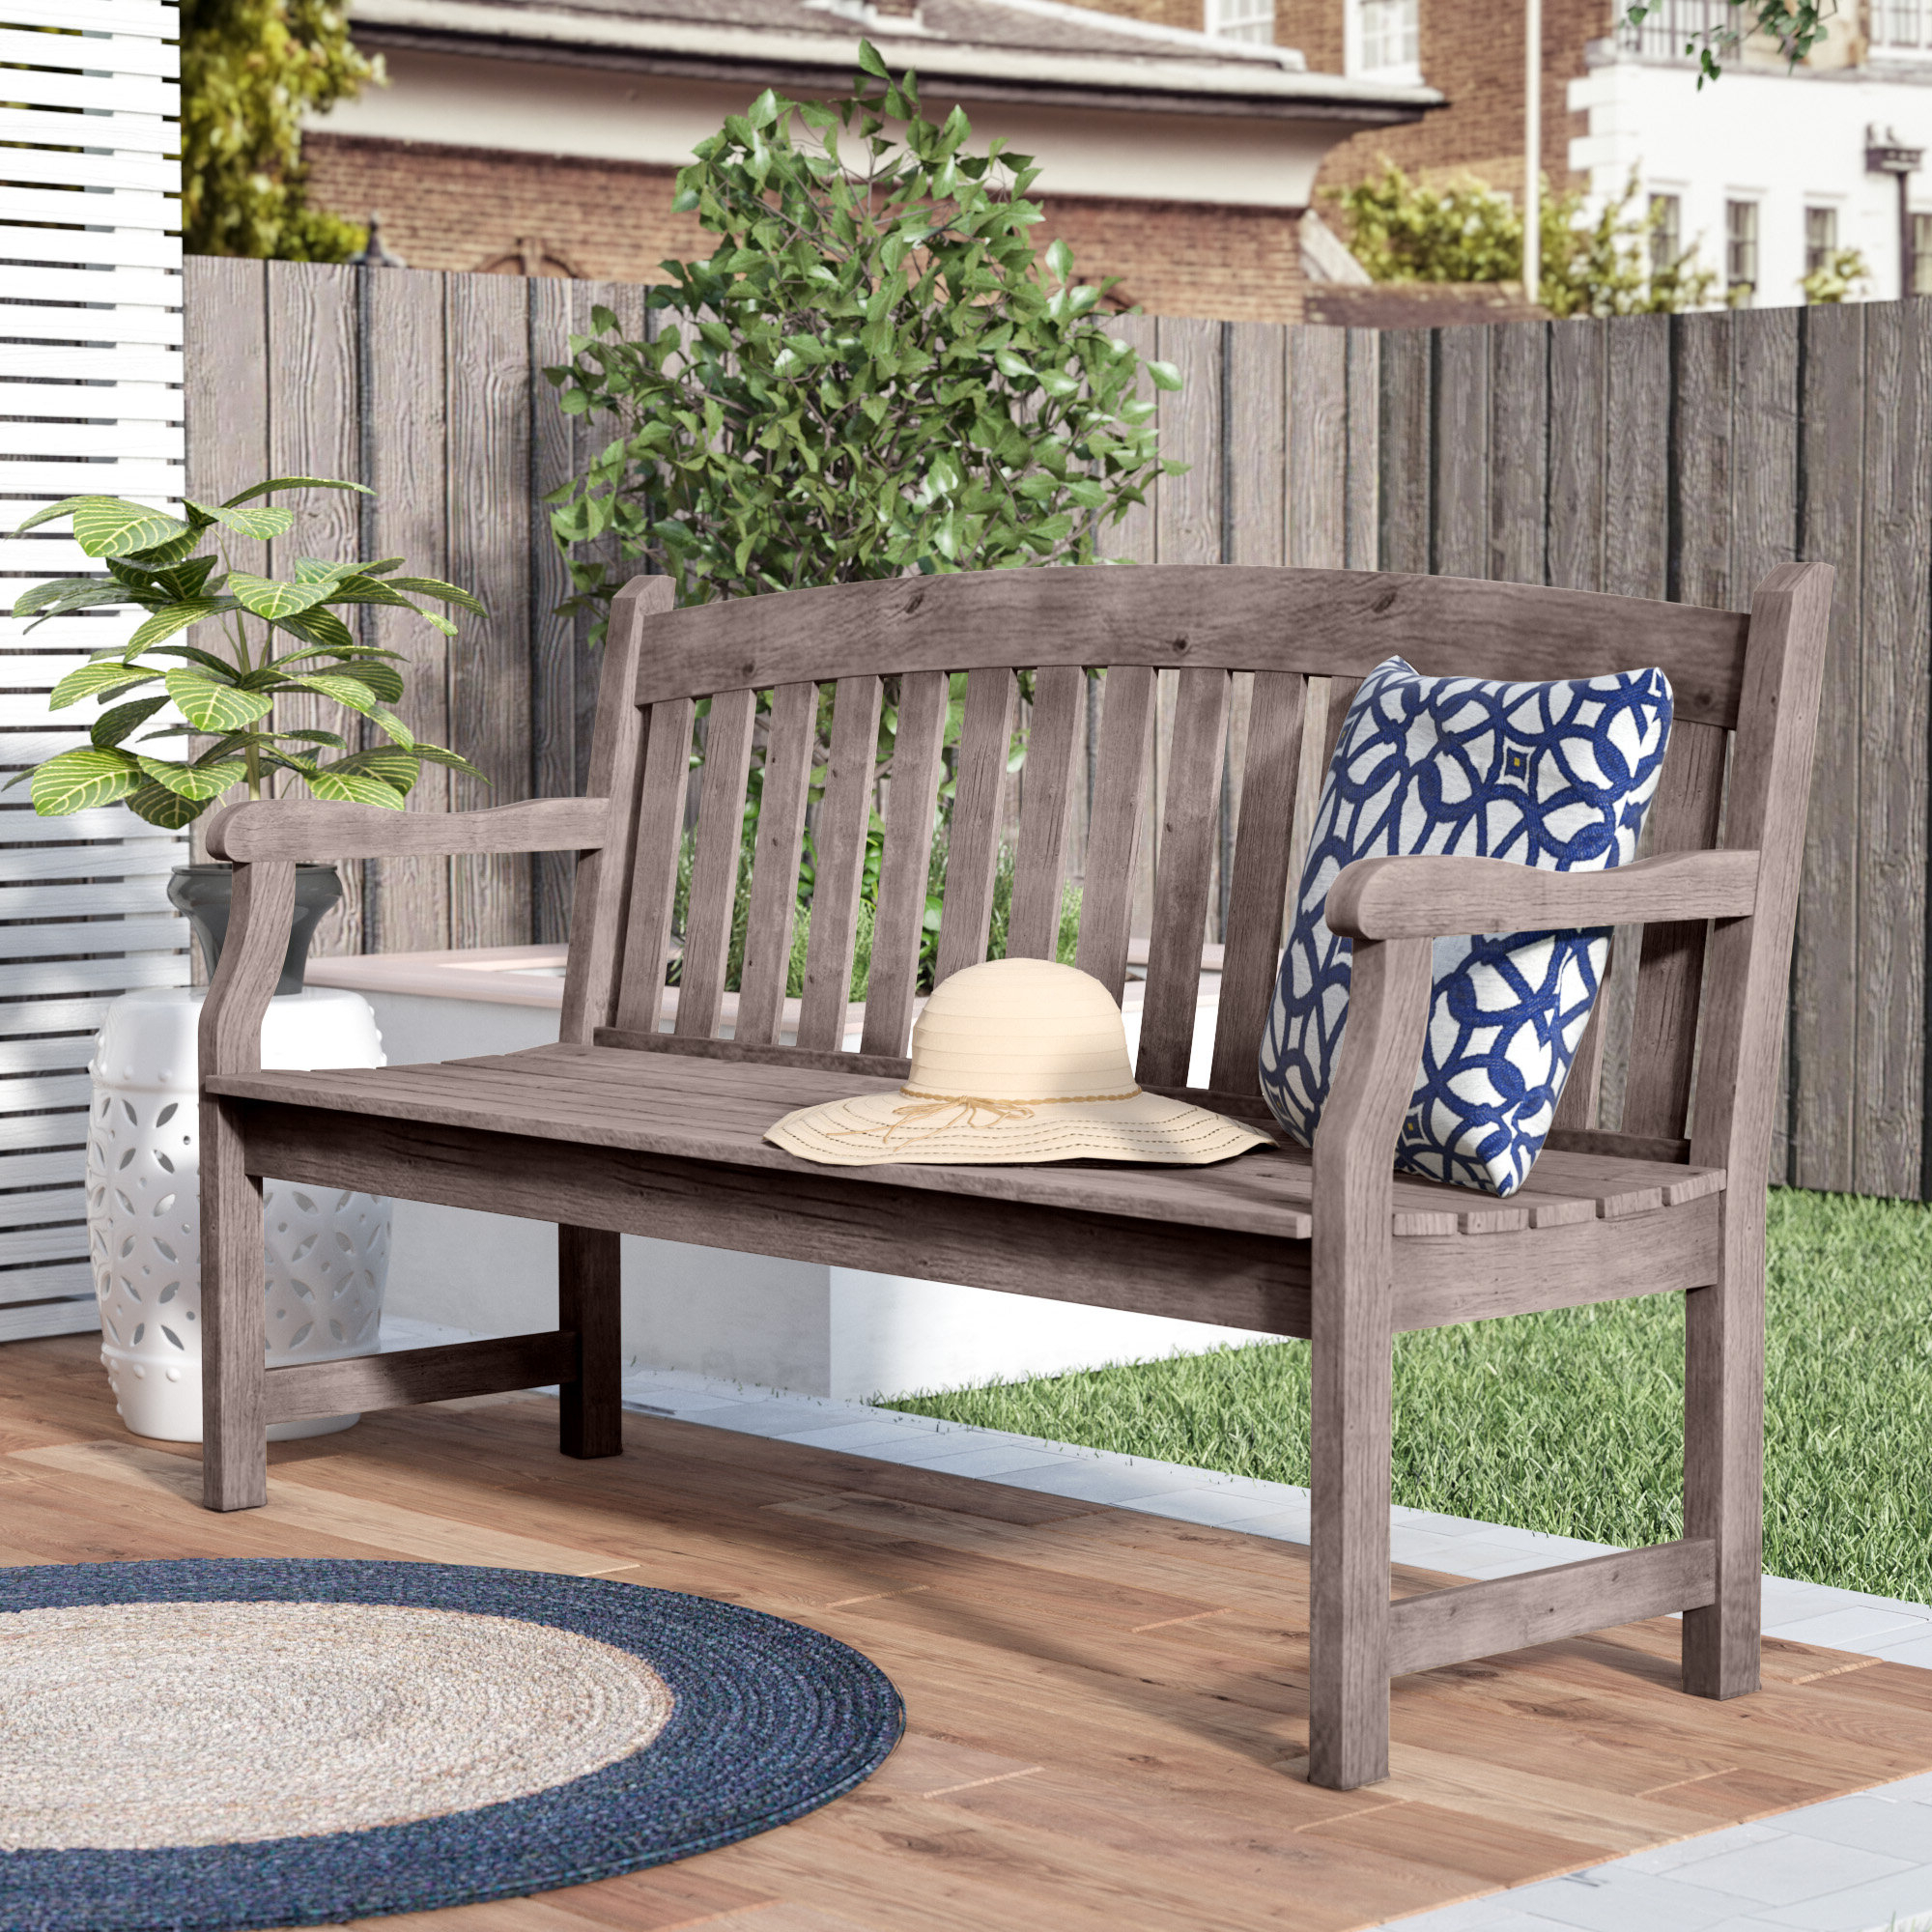 2020 Zephyrine Patio Dining Wooden Picnic Bench Inside Lucille Timberland Wooden Garden Benches (View 13 of 30)